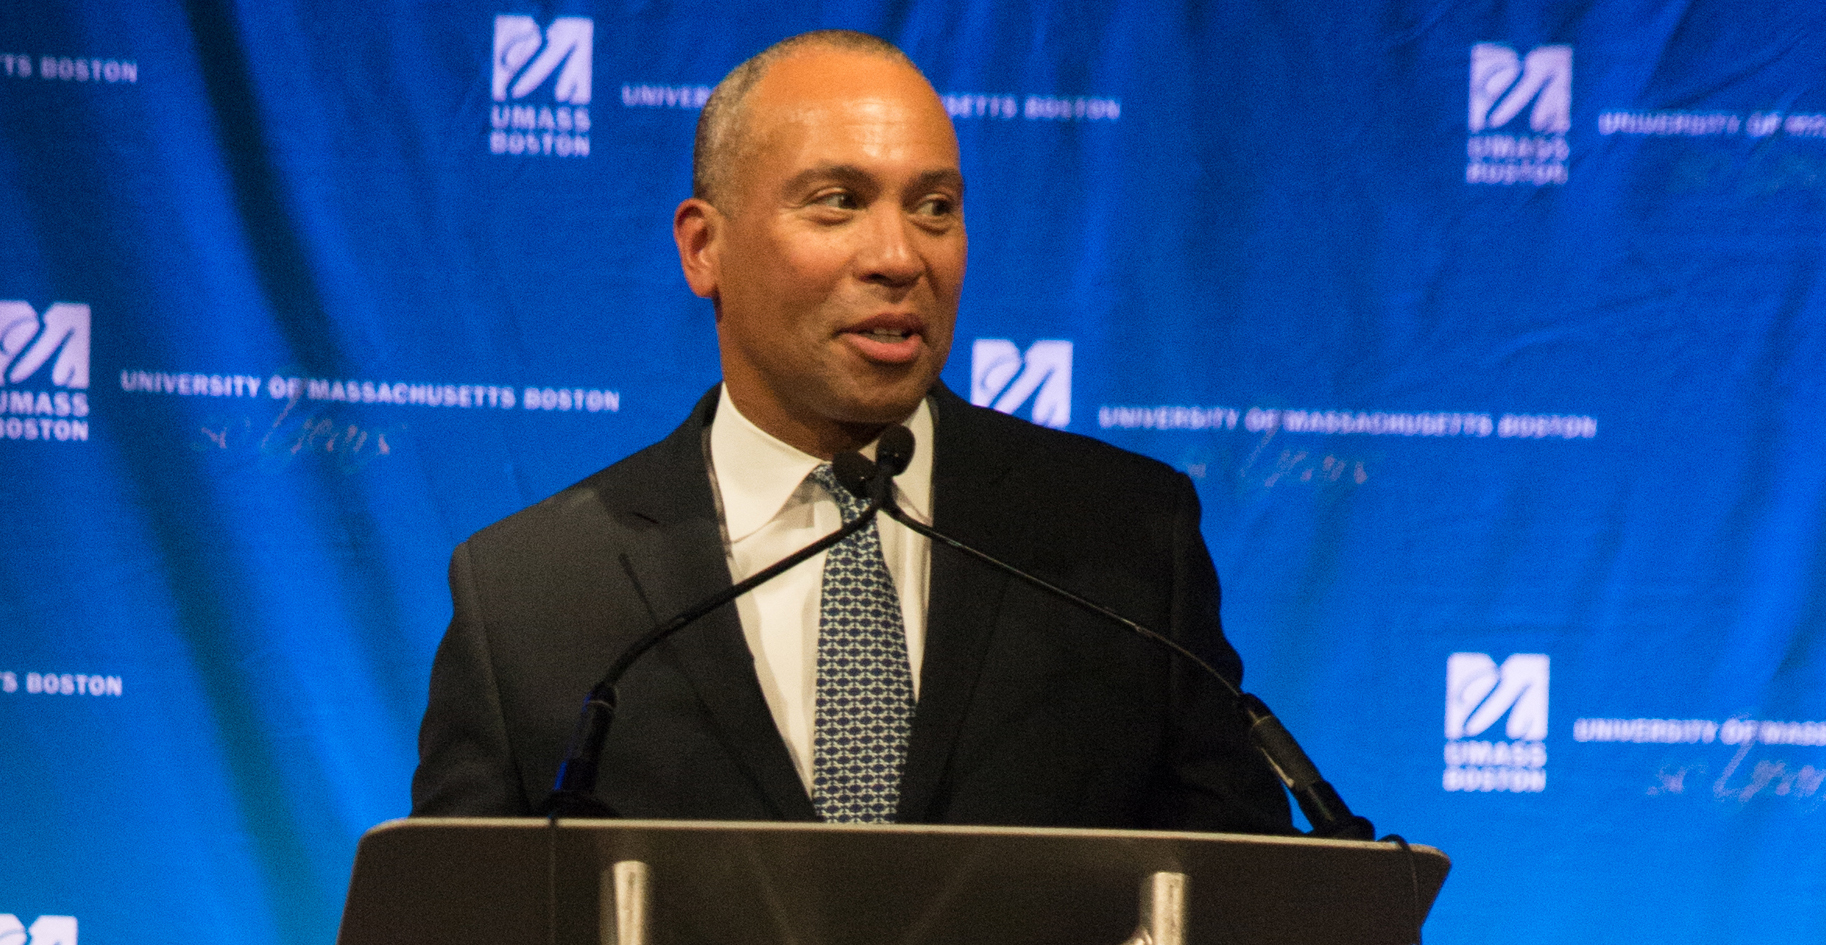 UMass Boston Honors Deval Patrick, Introduces Just Imagine Campaign at Golden Gala